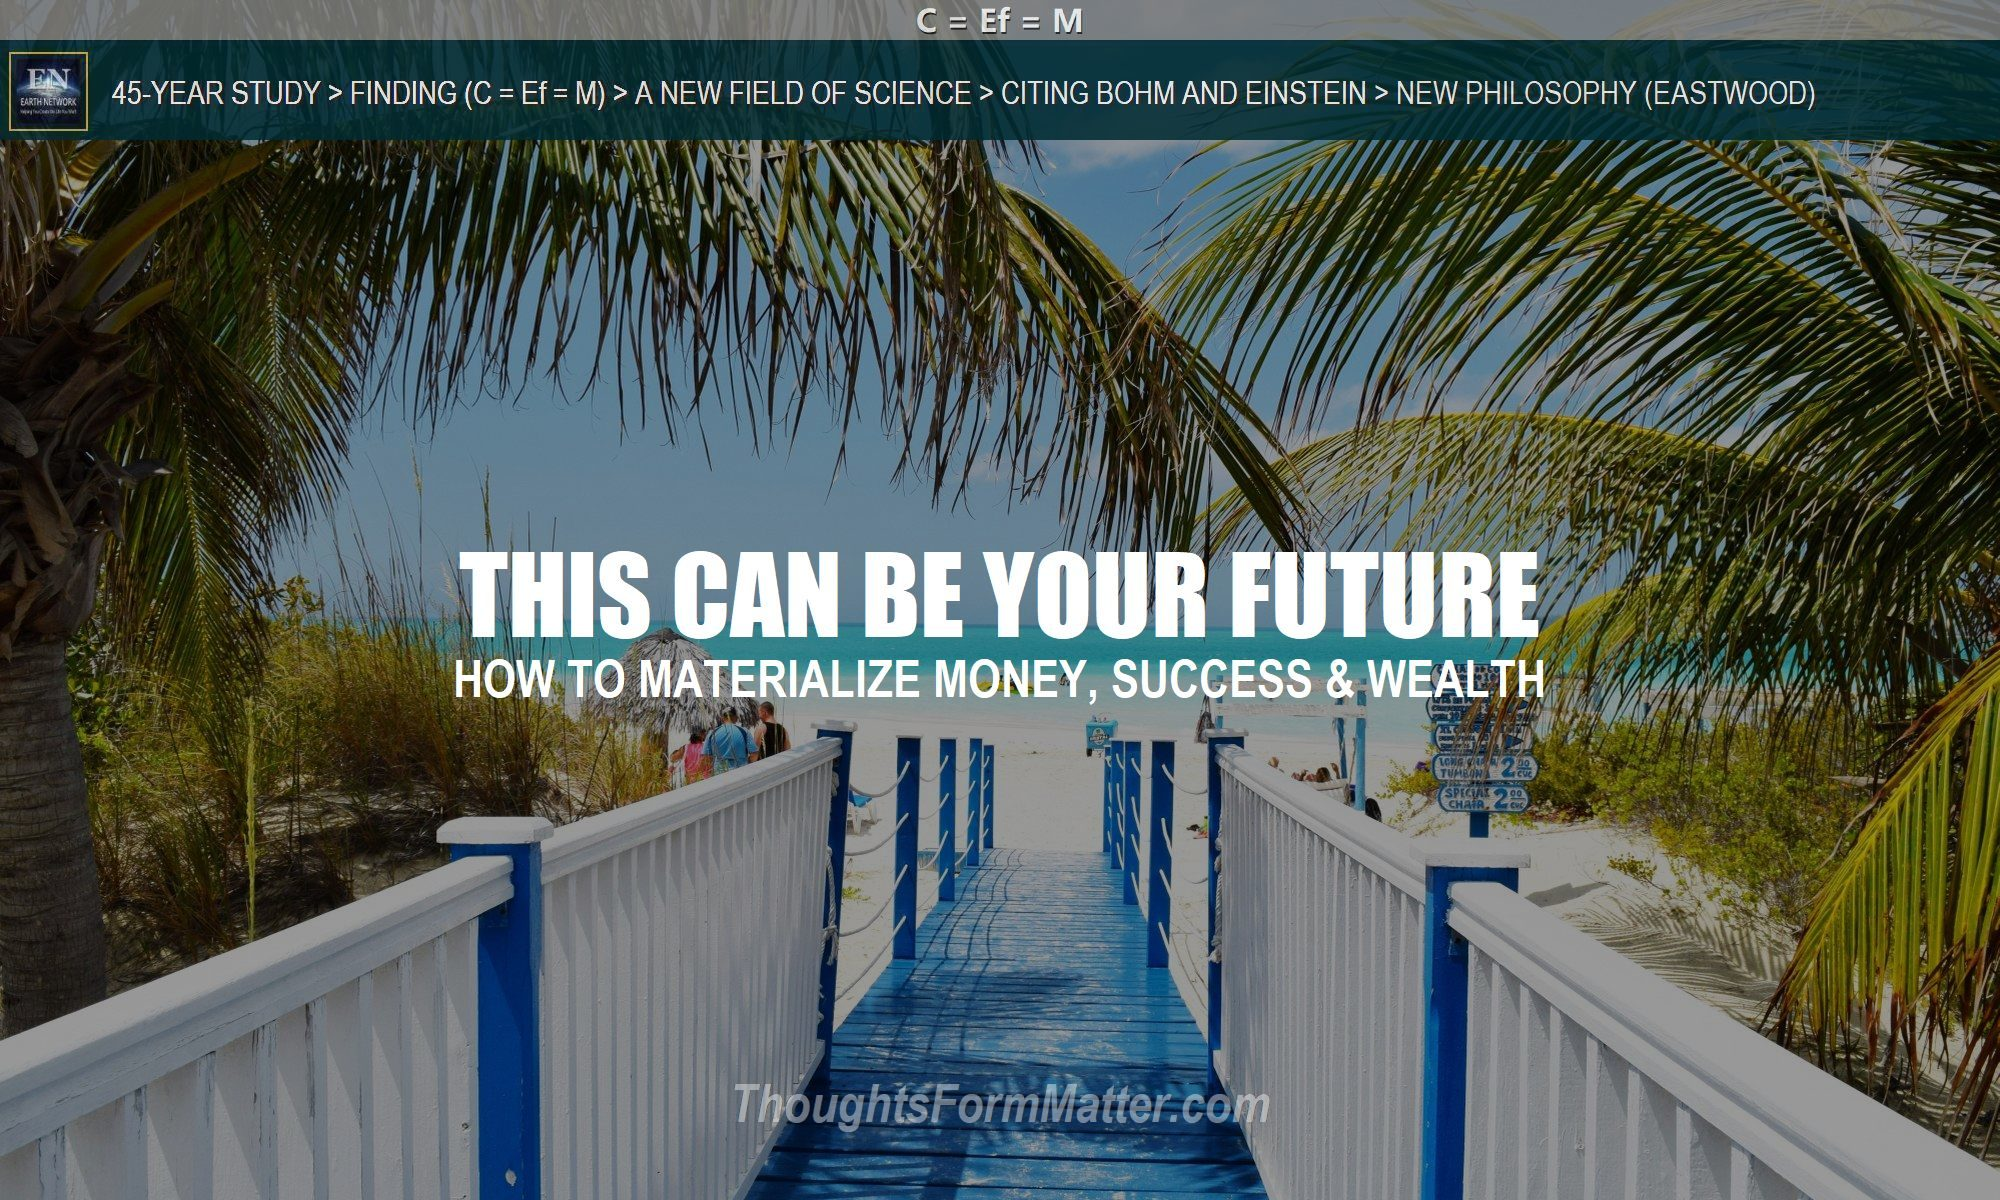 Beach inspires question how-to-materialize-money-success-how-do-i-manifest-wealth-thoughts-attract-create-prosperity-law-of-attraction